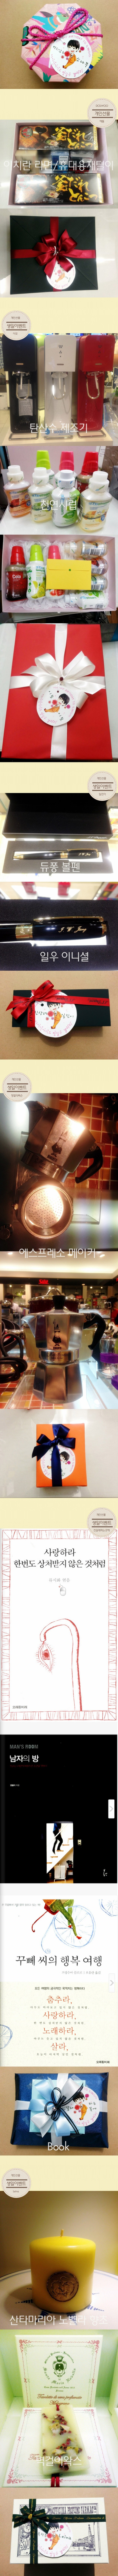 2013 9 Jung Il-woo gifts from DCIlwoo 2.jpg